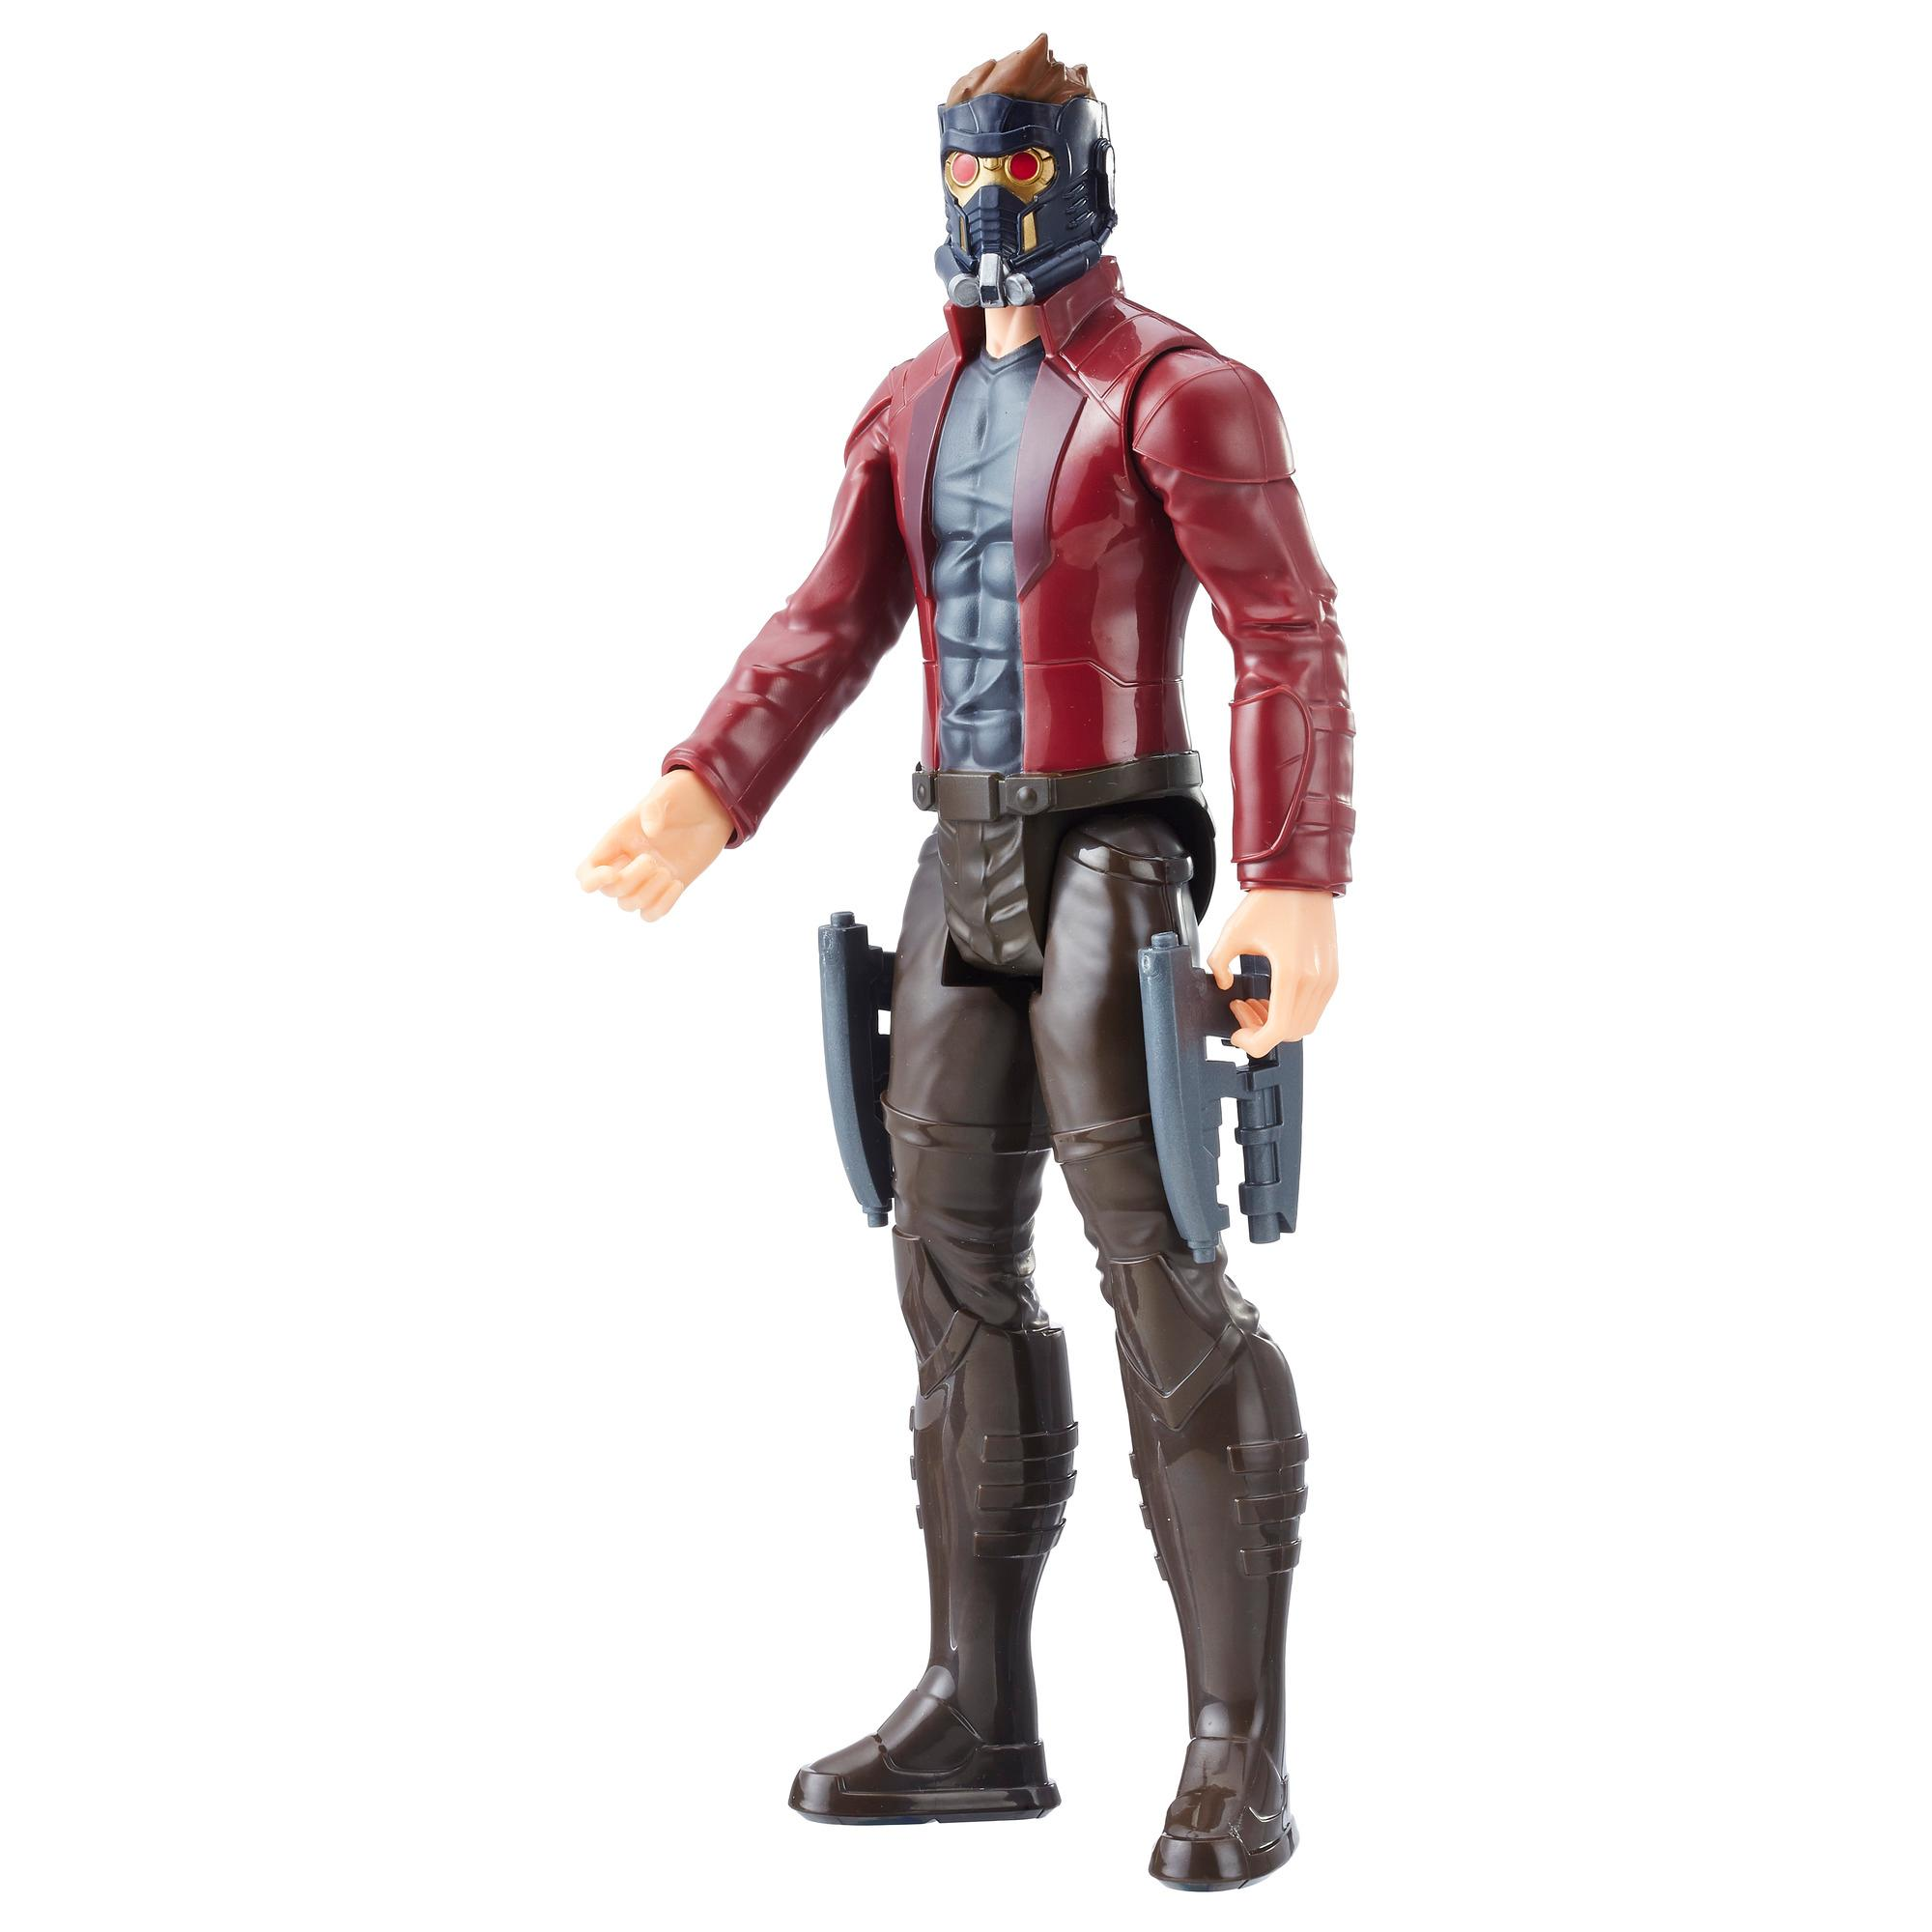 Marvel Infinity War Titan Hero Series - Star-Lord con puerto para Titan Hero Power FX